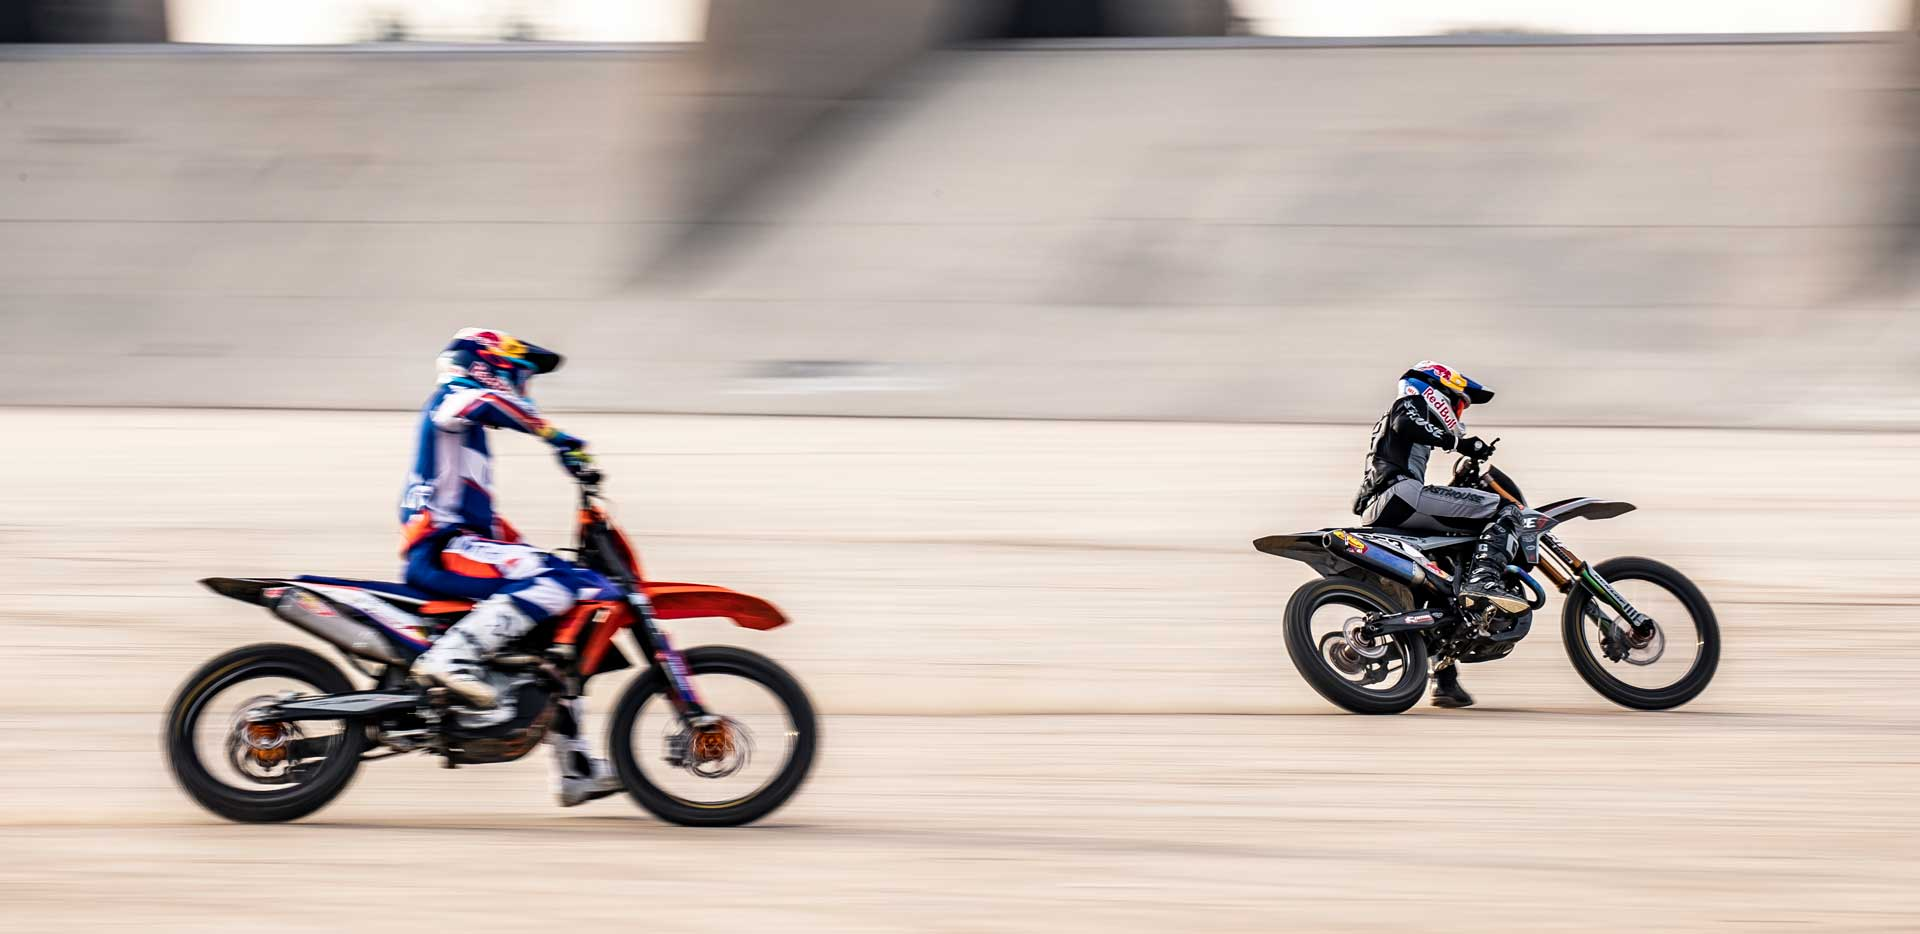 Duct Tape - Robbie Maddison & Tyler Bereman Run Wild in Los Angeles